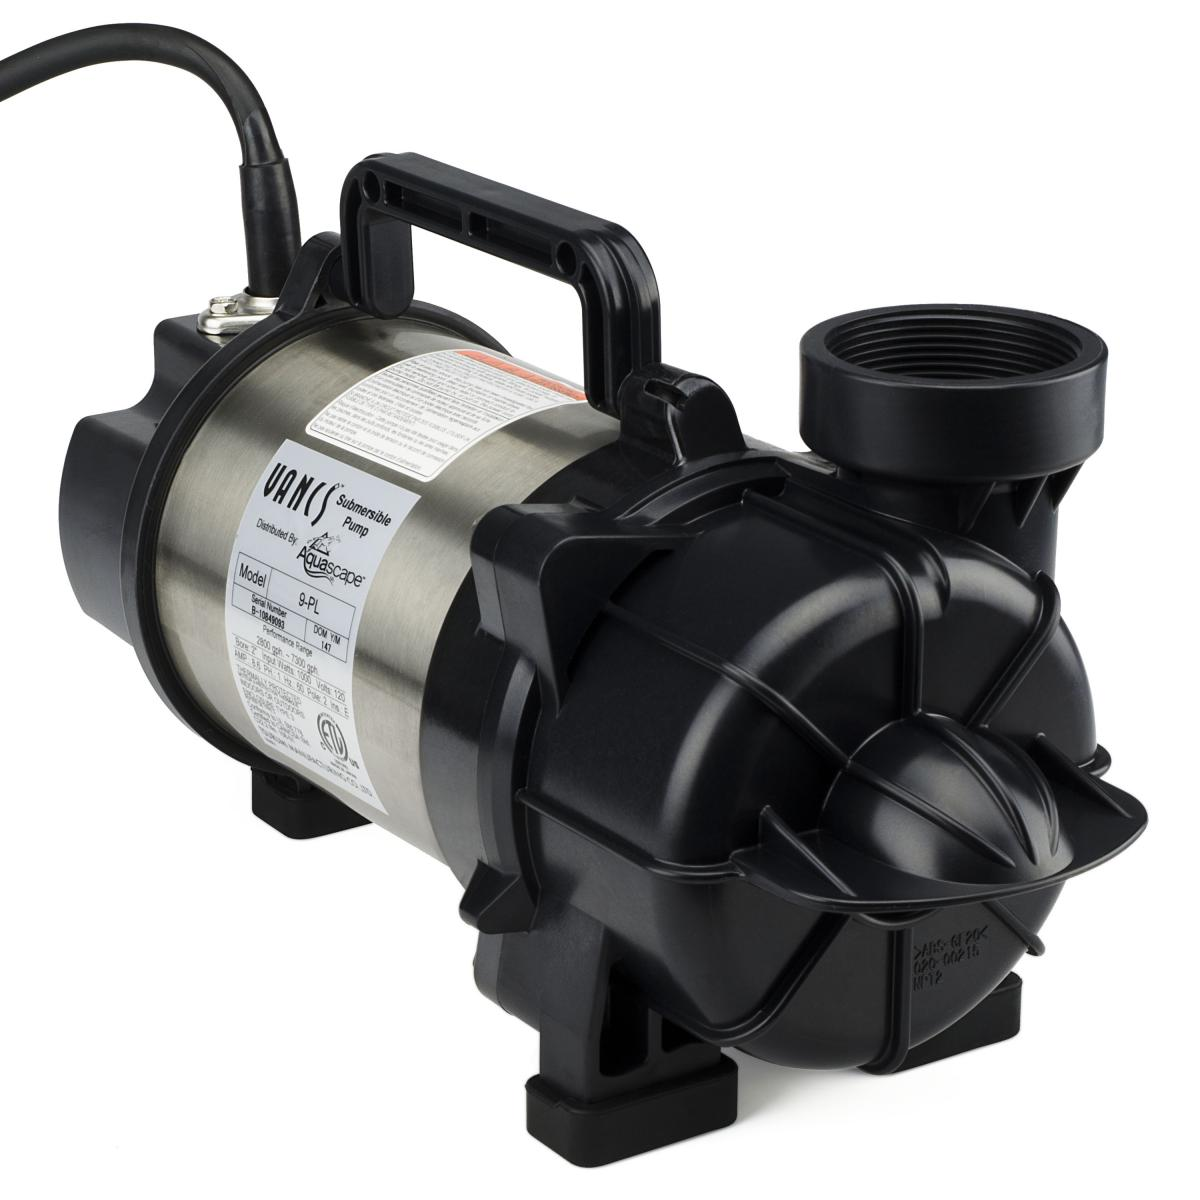 Tsurumi 9pl tsunami pond pump pond pumps water for Pond equipment supplies